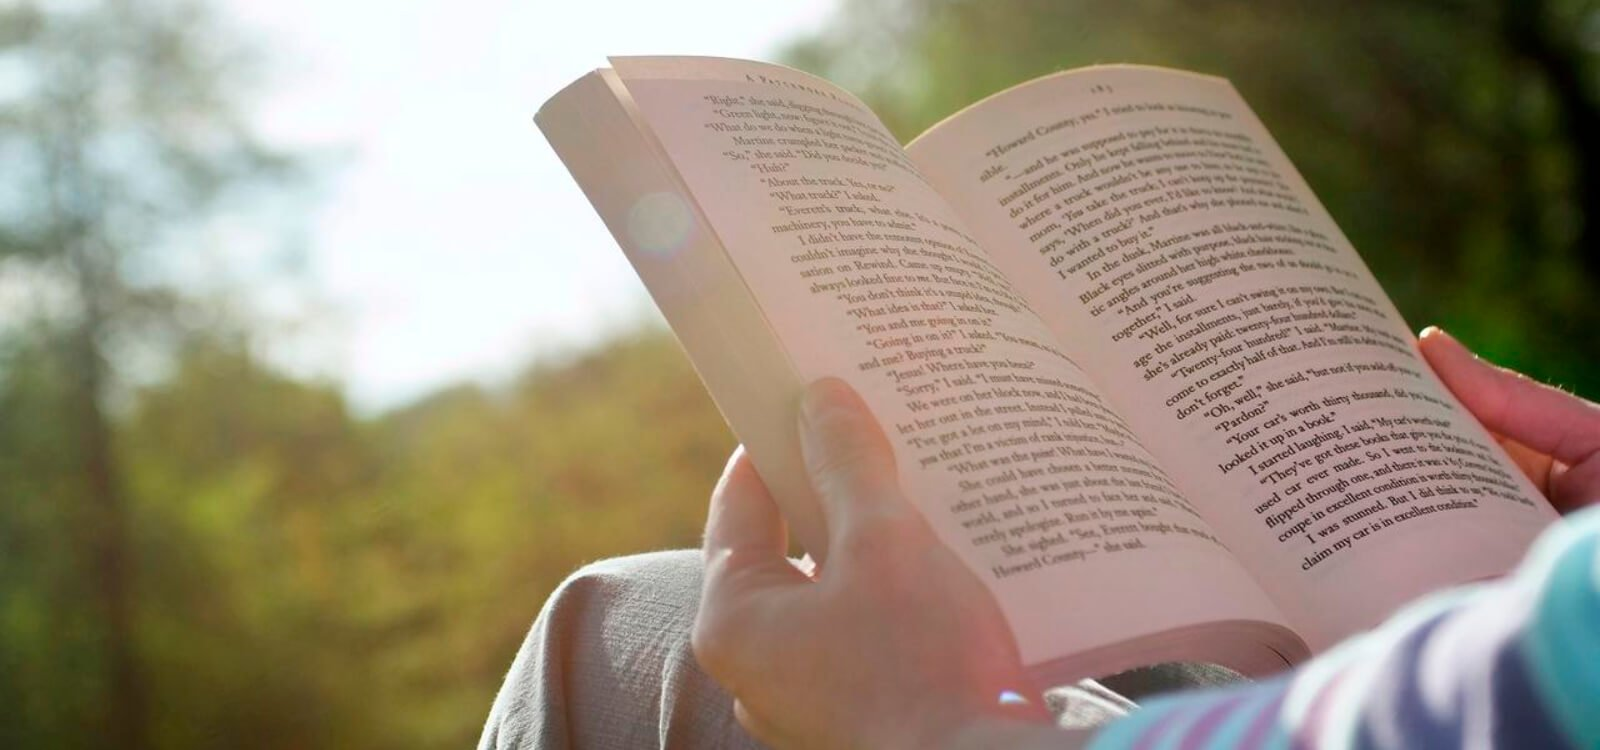 The Number-One Reason to Read (Is Not What You Think)